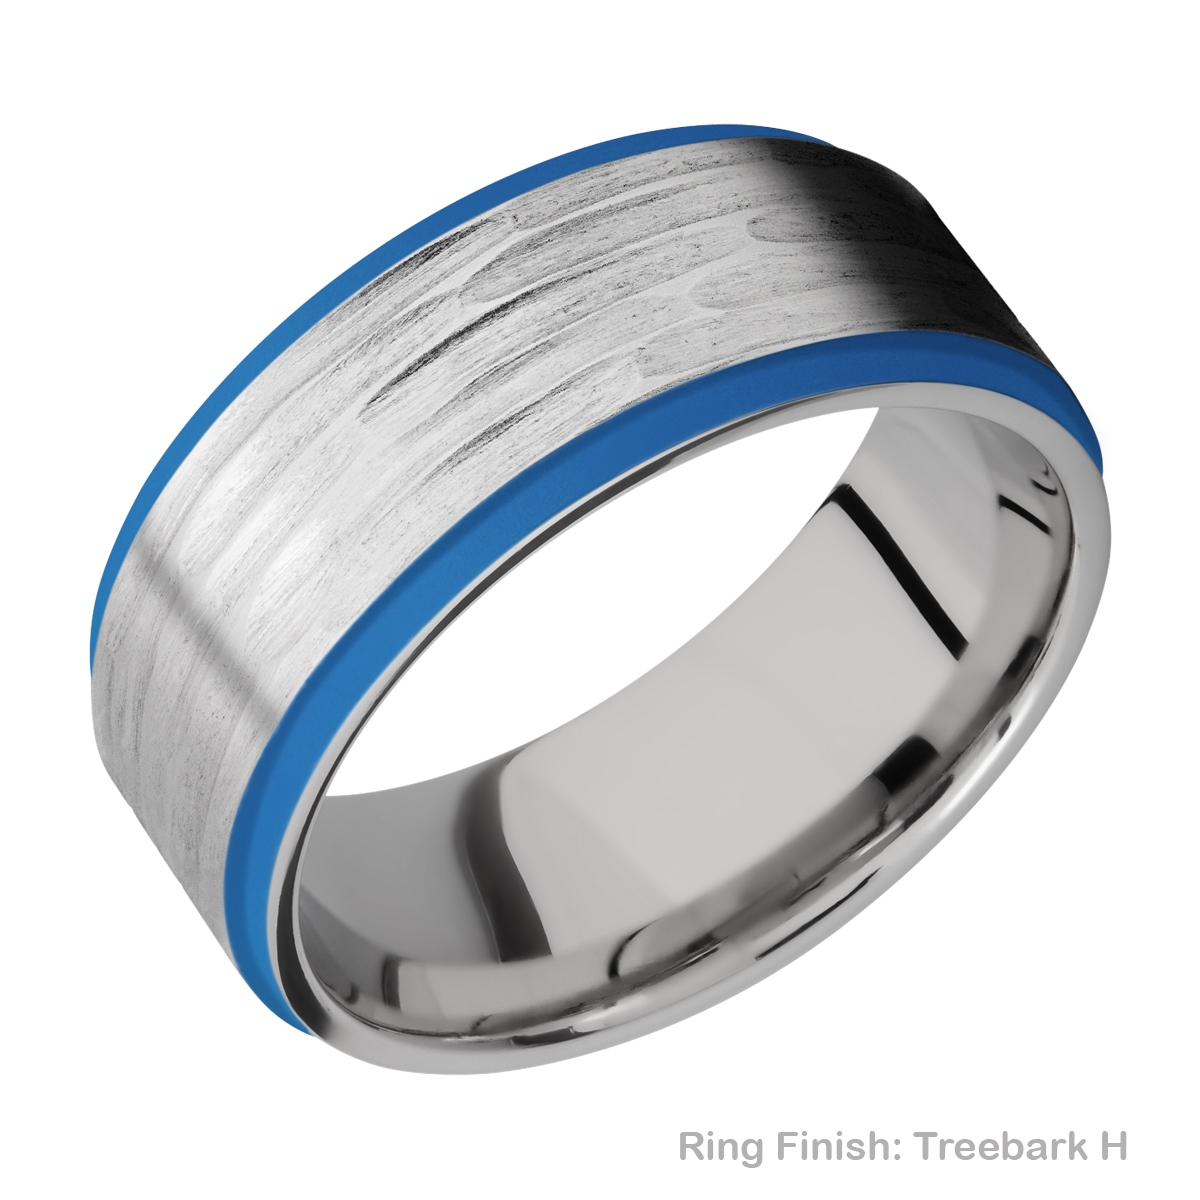 Lashbrook CC10FGE21EDGE/A/CERAKOTE Cobalt Chrome Wedding Ring or Band Alternative View 10